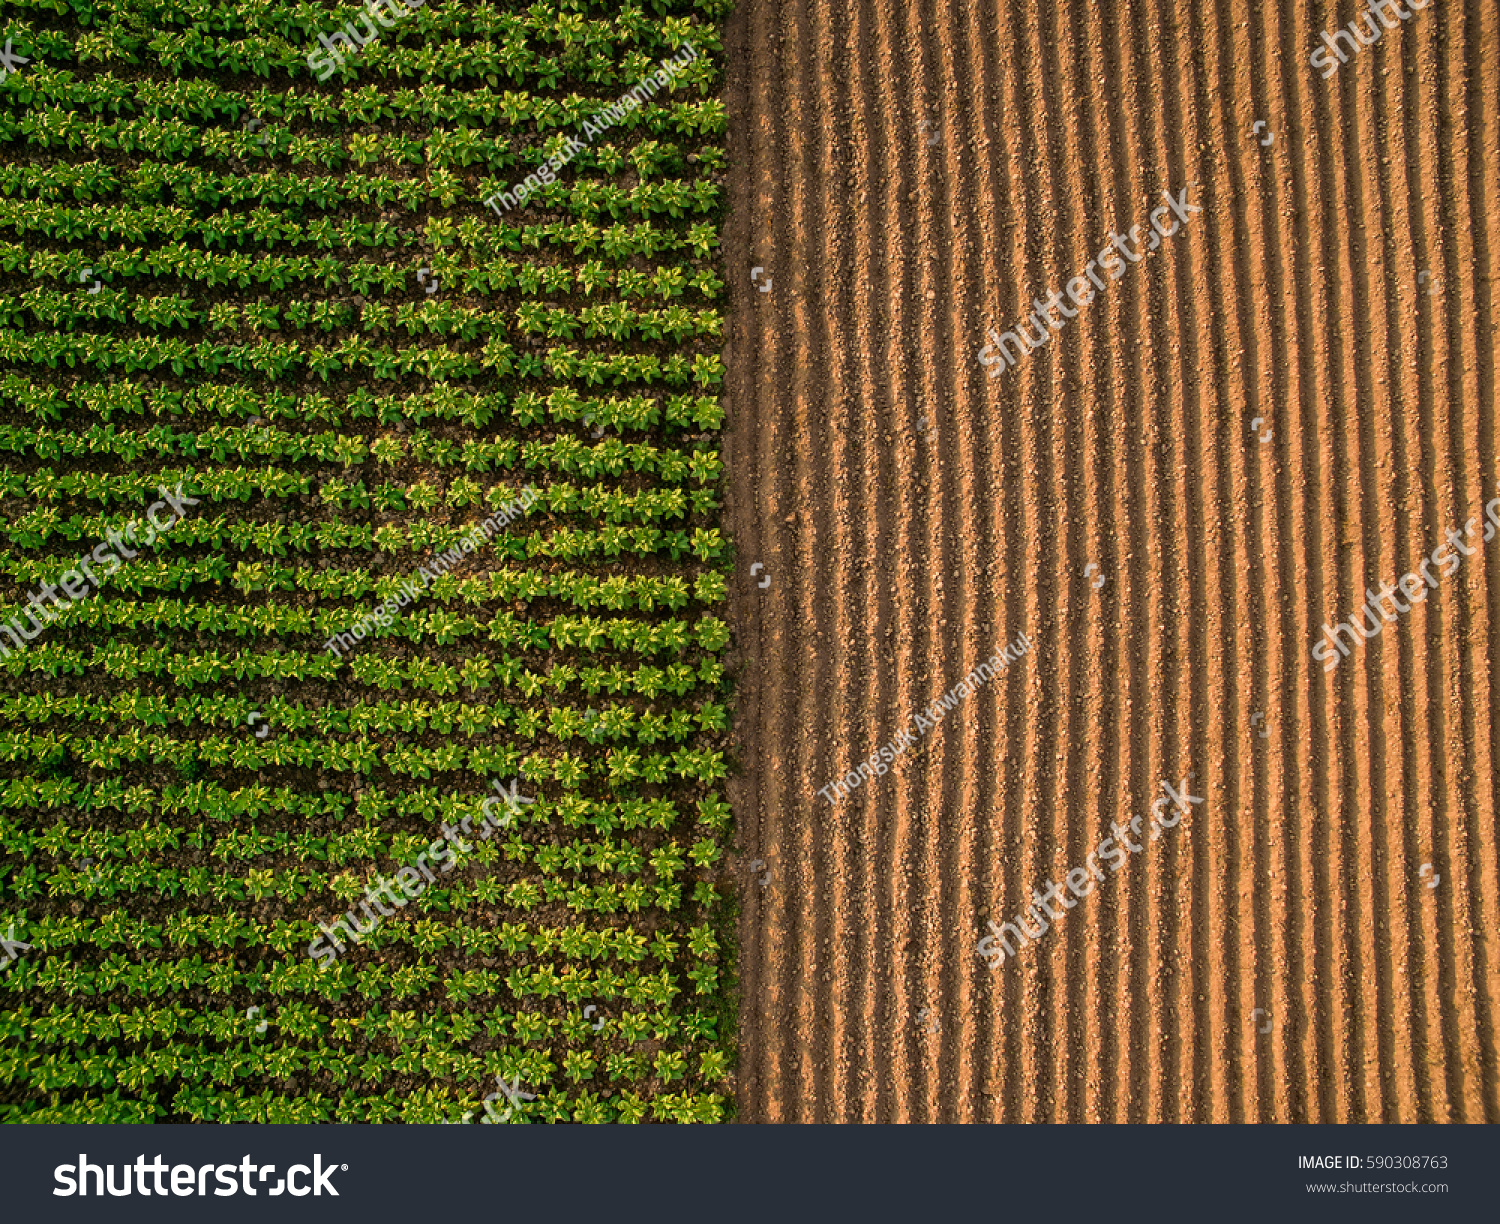 Aerial view ; Rows of soil before planting.Furrows row pattern in a plowed field prepared for planting crops in spring.Horizontal view in perspective.